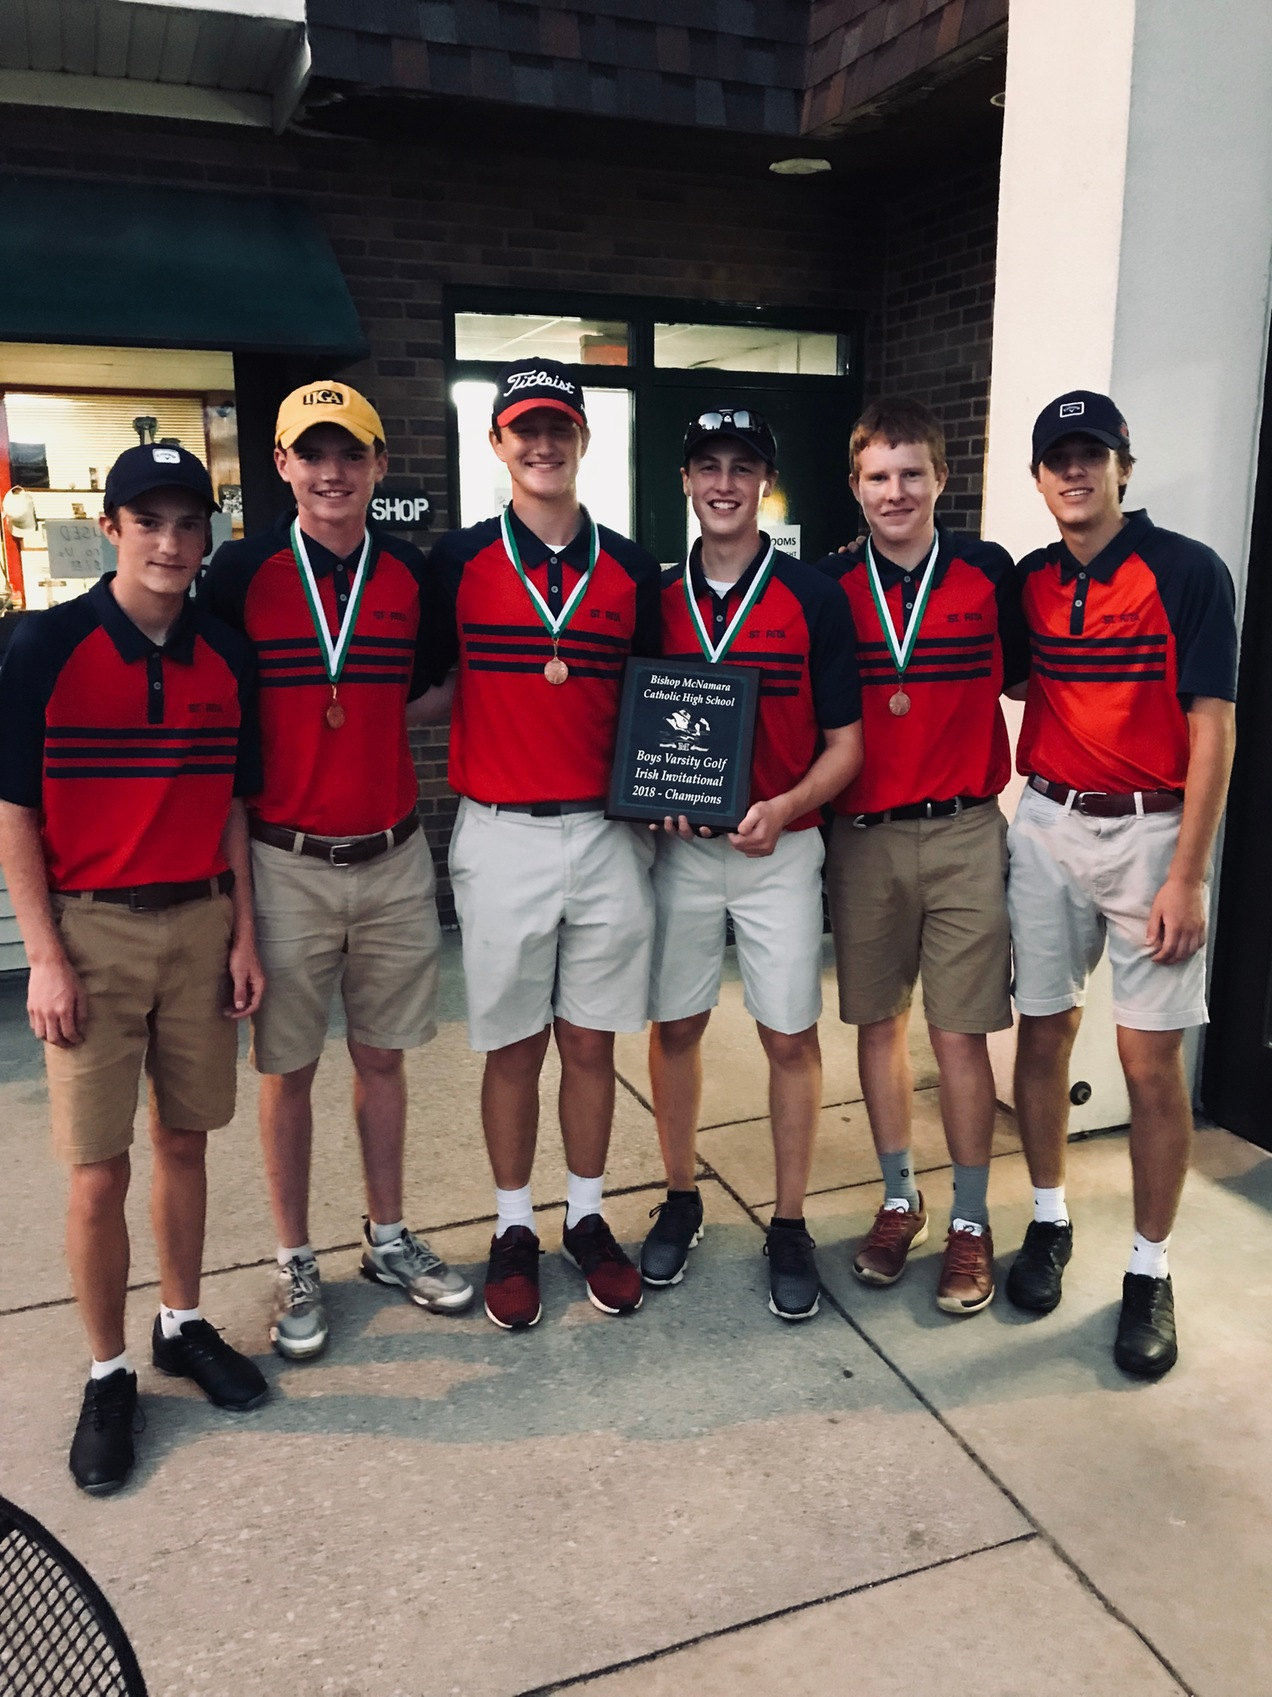 Congrats to Varsity Golf on winning the Bishop Mac Invite!